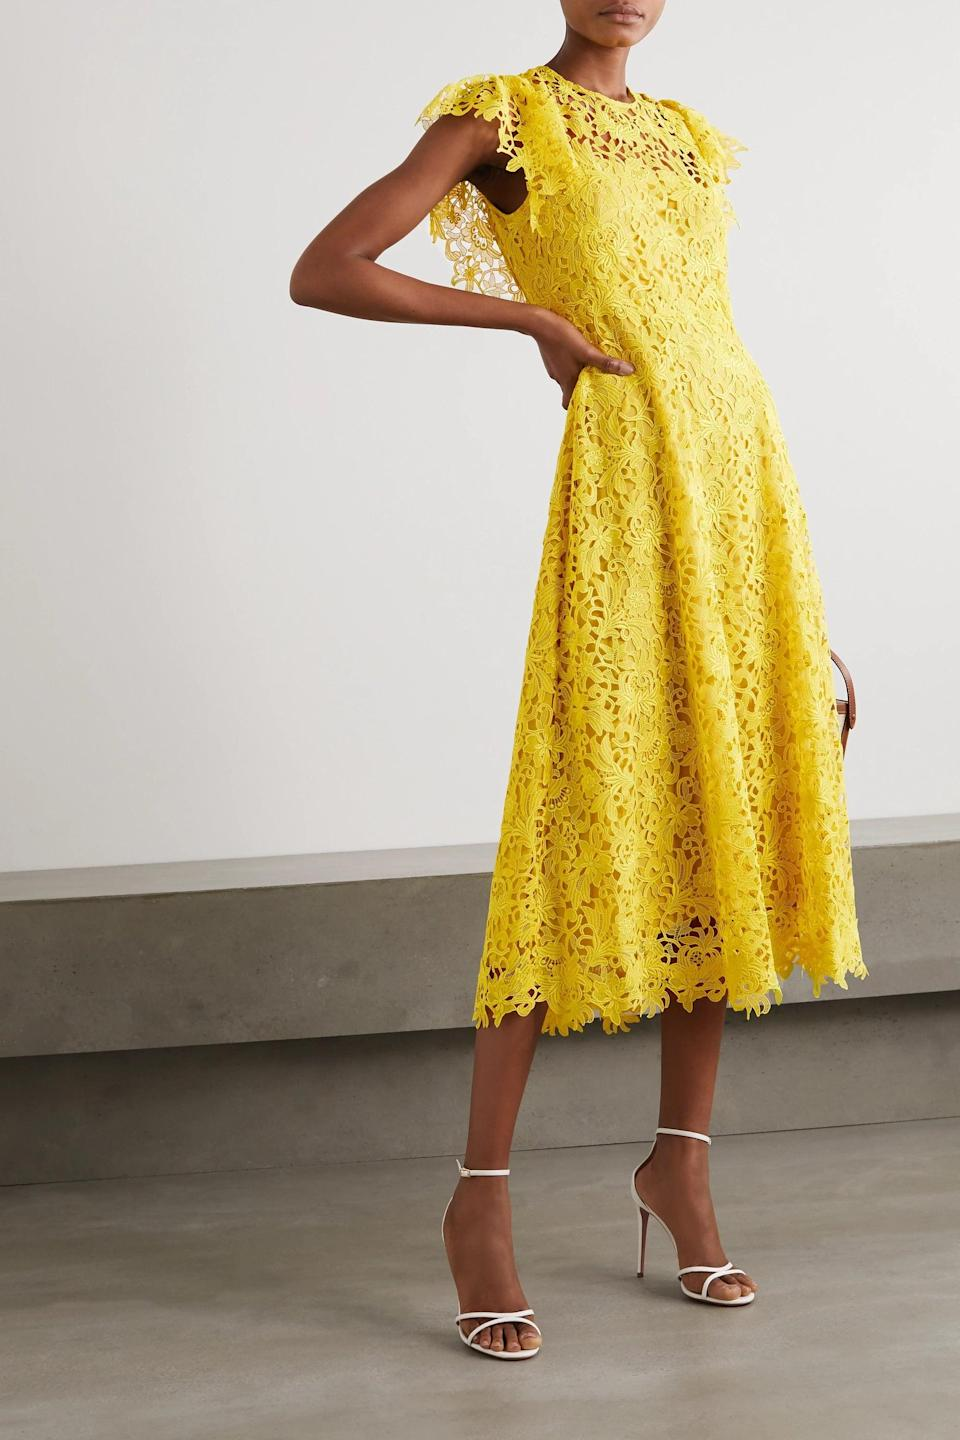 """<h2>Lela Rose Guipure Lace Midi Dress In Yellow</h2><br>A lacy tea-length dress is a classic choice for an intimate wedding — and when rendered in a cheerful shade of sunflower yellow, it will bring an extra-bright light to your special day.<br><br><em>Shop Lela Rose at <strong><a href=""""https://www.net-a-porter.com/en-us/shop/designer/lela-rose"""" rel=""""nofollow noopener"""" target=""""_blank"""" data-ylk=""""slk:Net-a-Porter"""" class=""""link rapid-noclick-resp"""">Net-a-Porter</a></strong></em><br><br><strong>Lela Rose</strong> Wildflower guipure lace midi dress, $, available at <a href=""""https://go.skimresources.com/?id=30283X879131&url=https%3A%2F%2Fwww.net-a-porter.com%2Fen-us%2Fshop%2Fproduct%2Flela-rose%2Fclothing%2Fmidi-dresses%2Fwildflower-guipure-lace-midi-dress%2F24092600056996820"""" rel=""""nofollow noopener"""" target=""""_blank"""" data-ylk=""""slk:Net-A-Porter"""" class=""""link rapid-noclick-resp"""">Net-A-Porter</a>"""